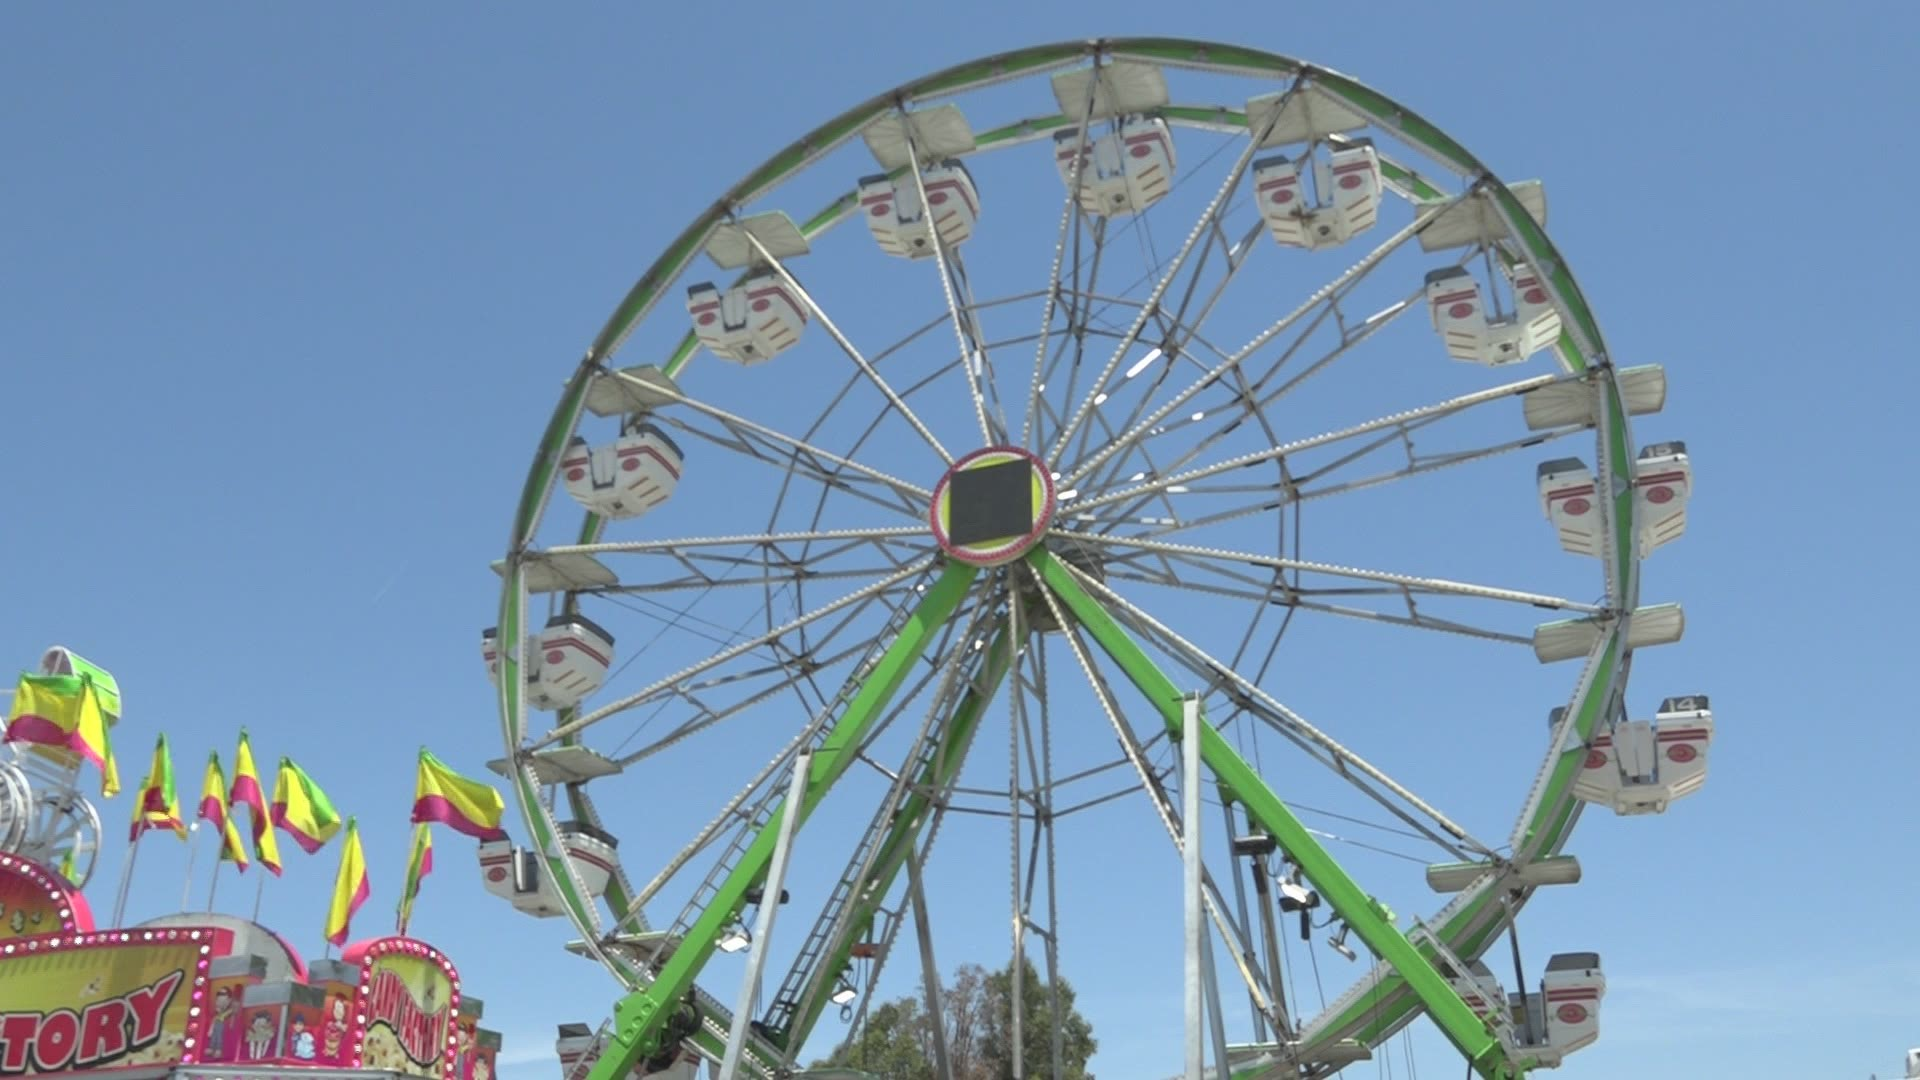 The Best Of Our County San Joaquin Fair Preps For 4 Days Of Fun